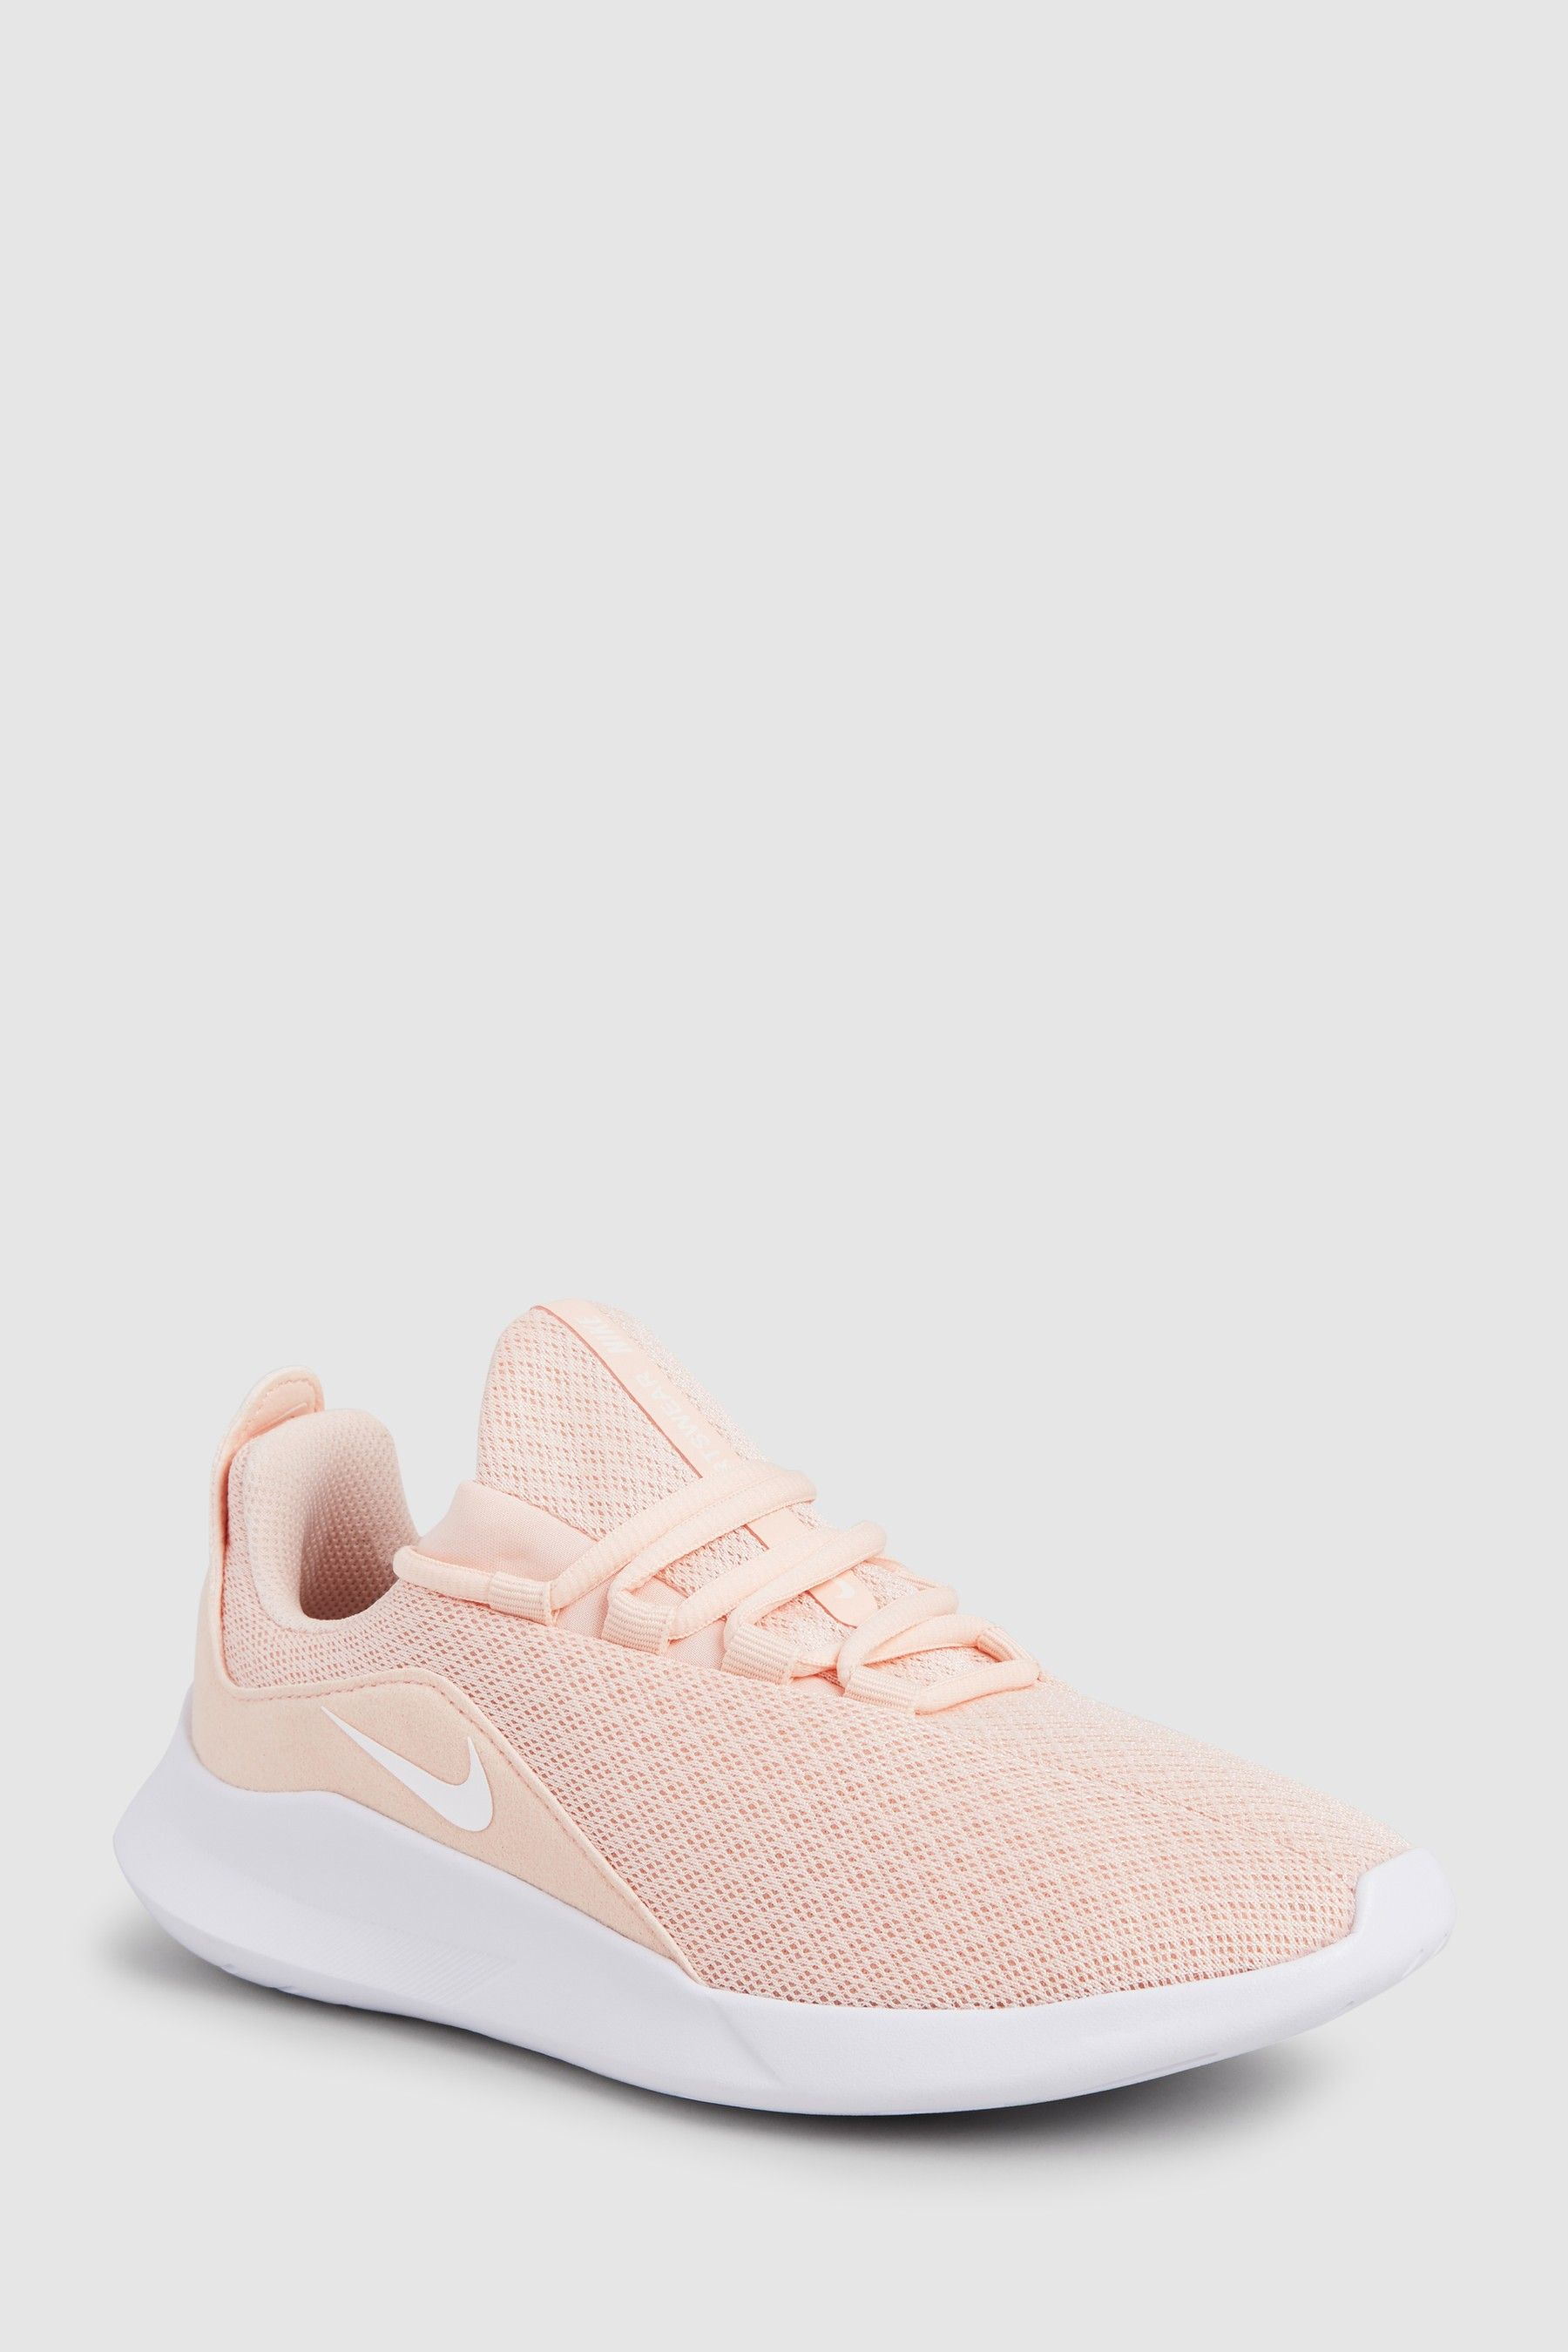 Womens Nike Viale - Pink | Zapatos